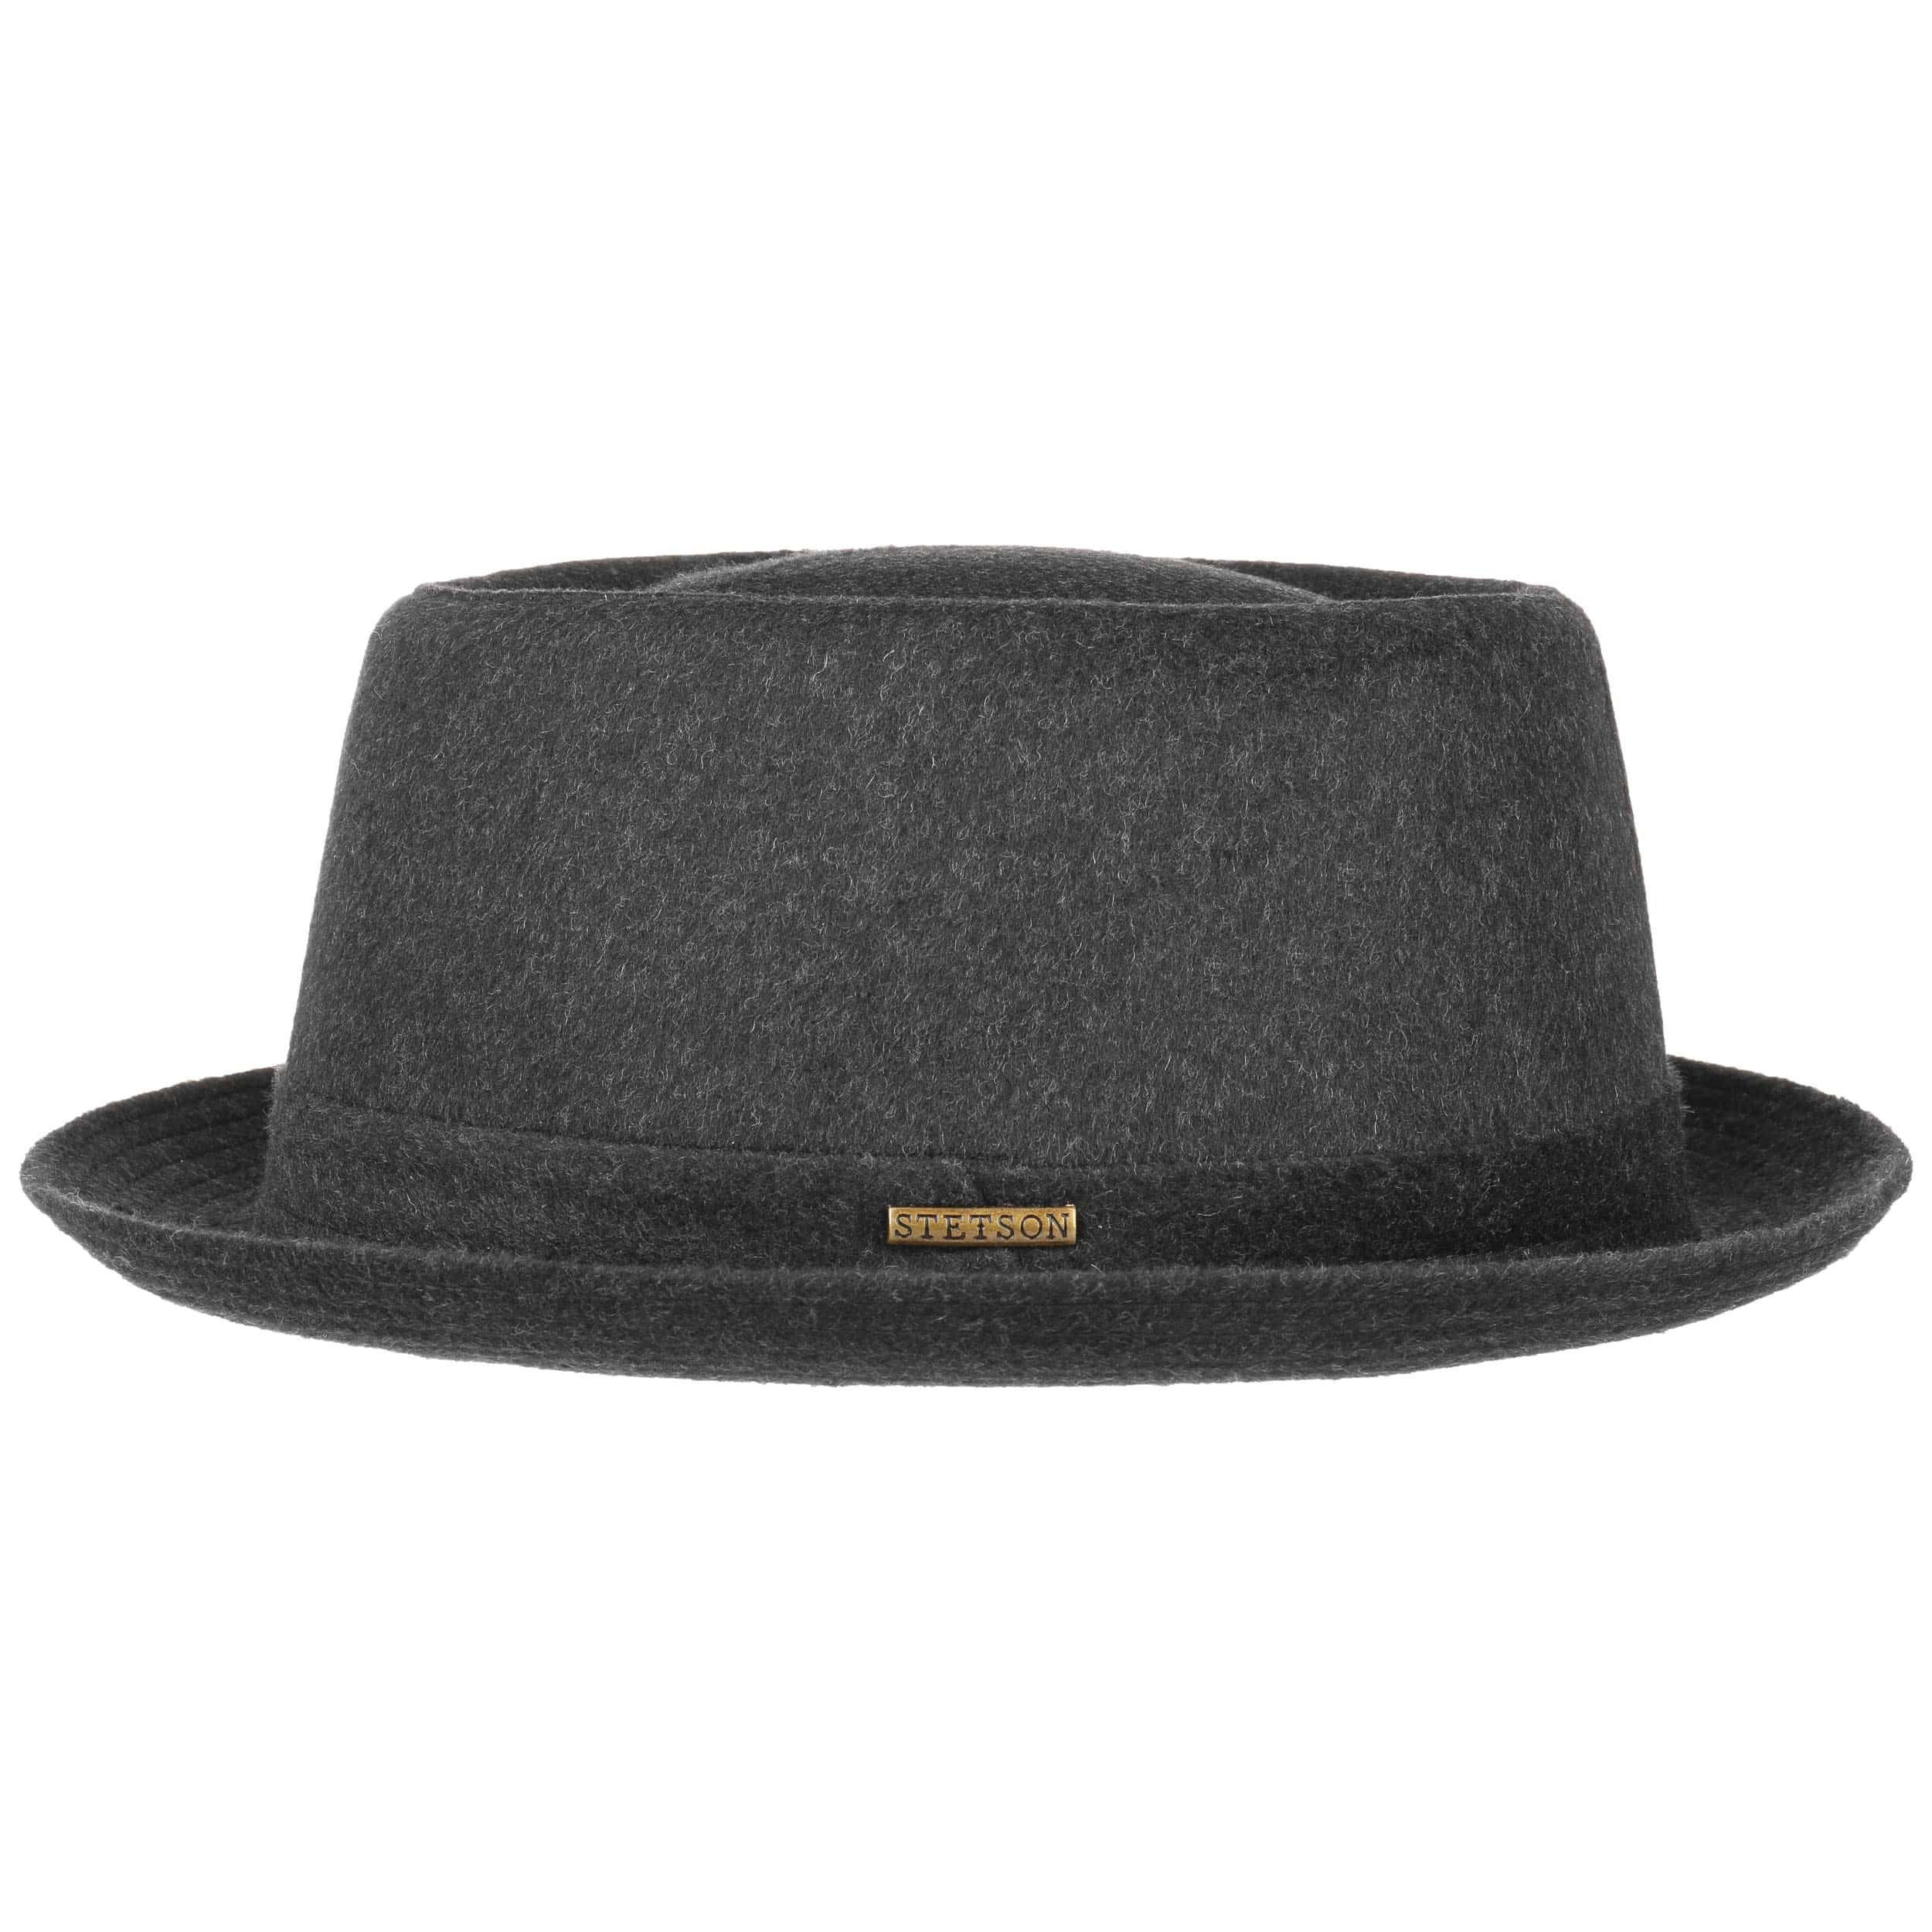 ... Wool Pork Pie Hat by Stetson - anthracite 4 ... 30b9b46f96e